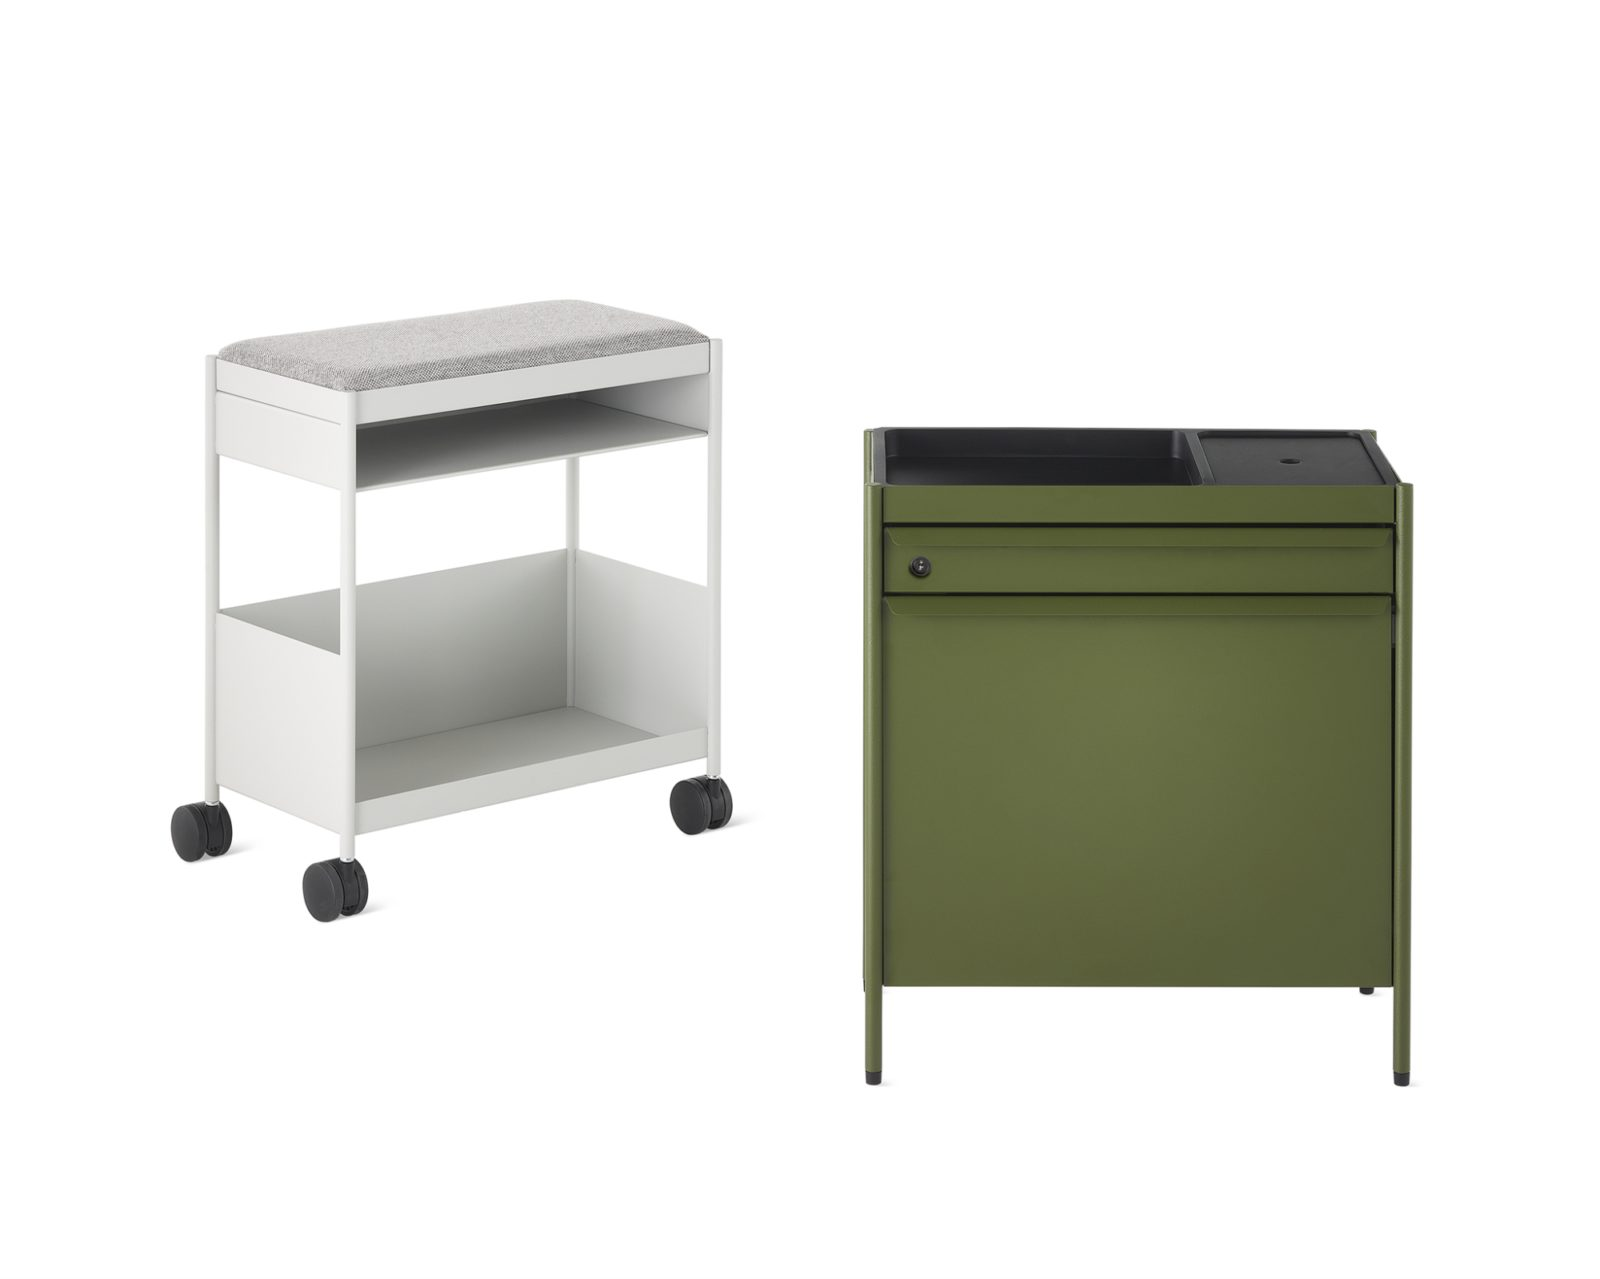 An individual white mobile OE1 storage trolley with open shelves on casters next to a green individual OE1 Storage Trolley with lockable drawers on glides.